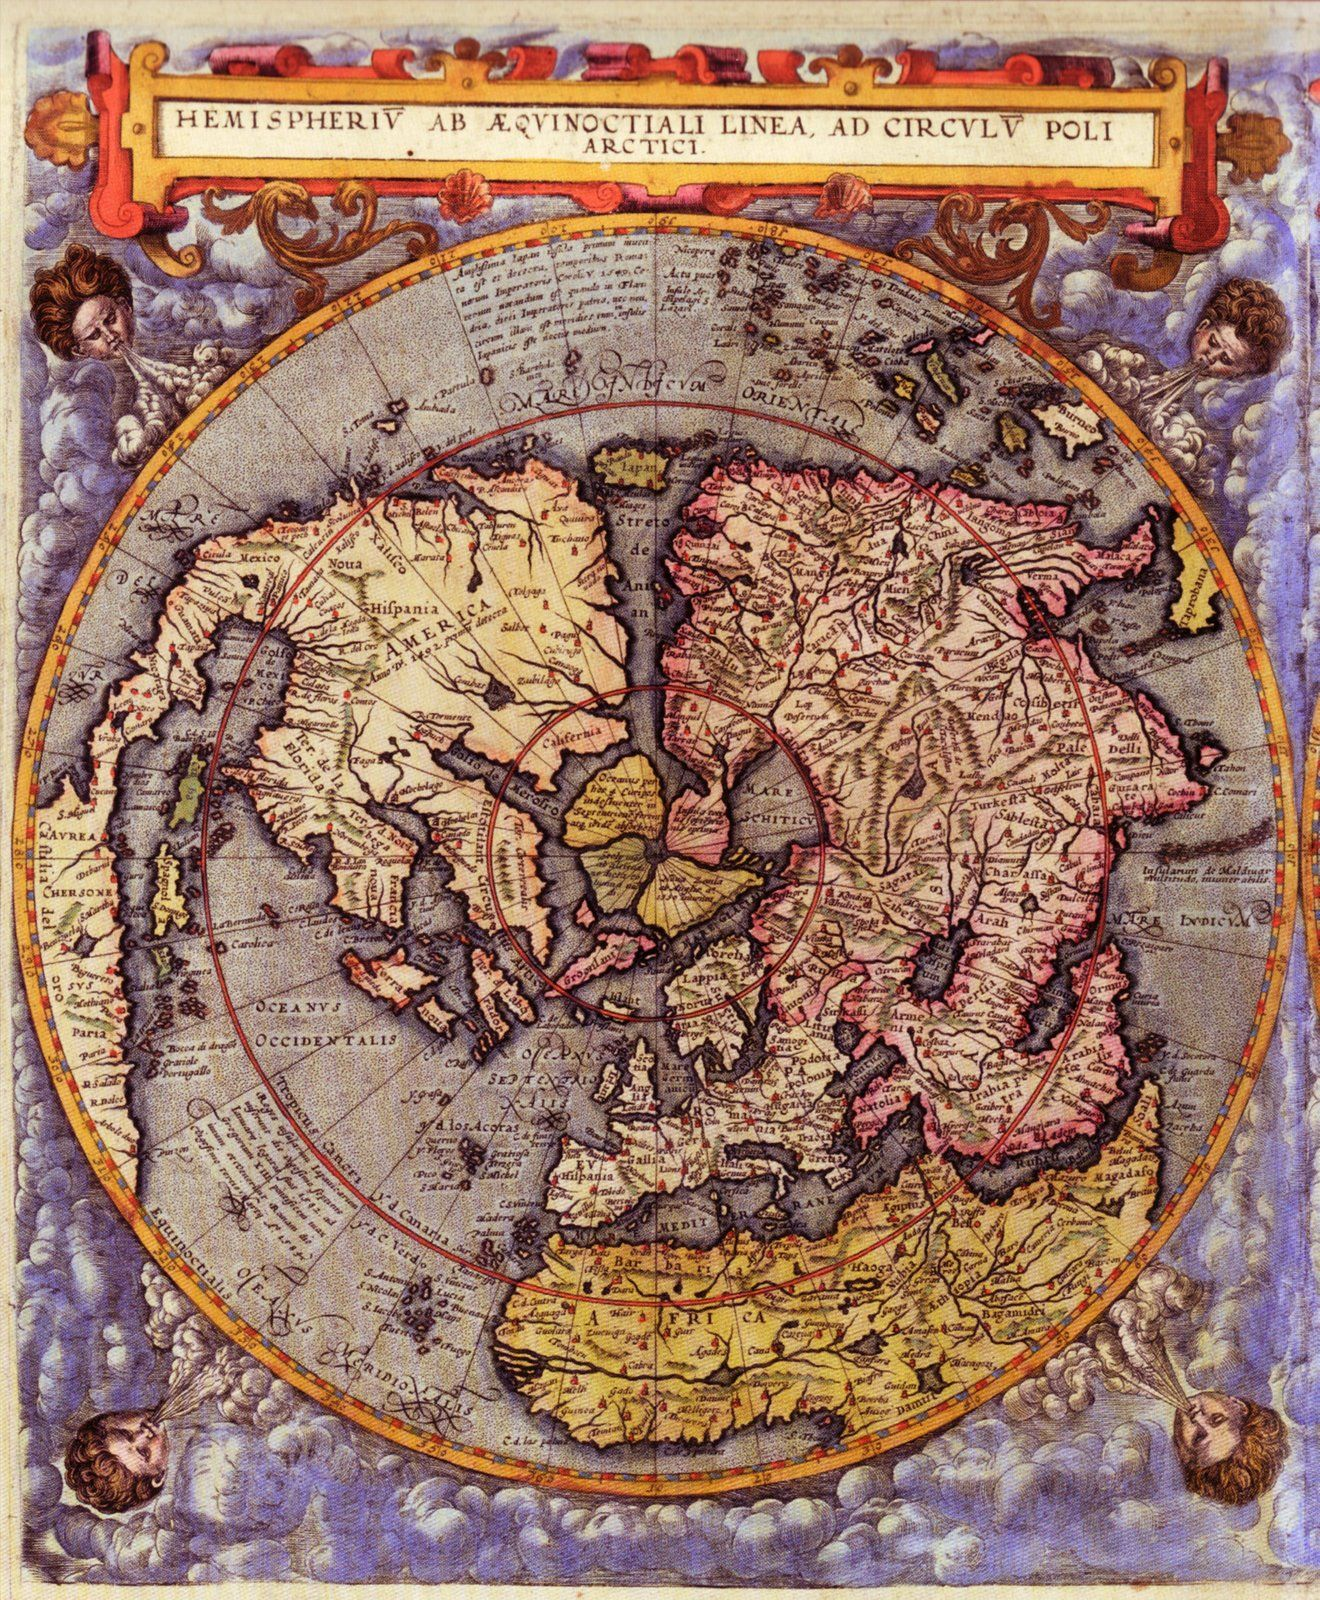 World map 16th century world maps of the northern and southern century gerarddejodemap northernhemisphere world maps of the northern and southern hemisphere published in 1593 by the dutch cartographer and engraver gumiabroncs Choice Image